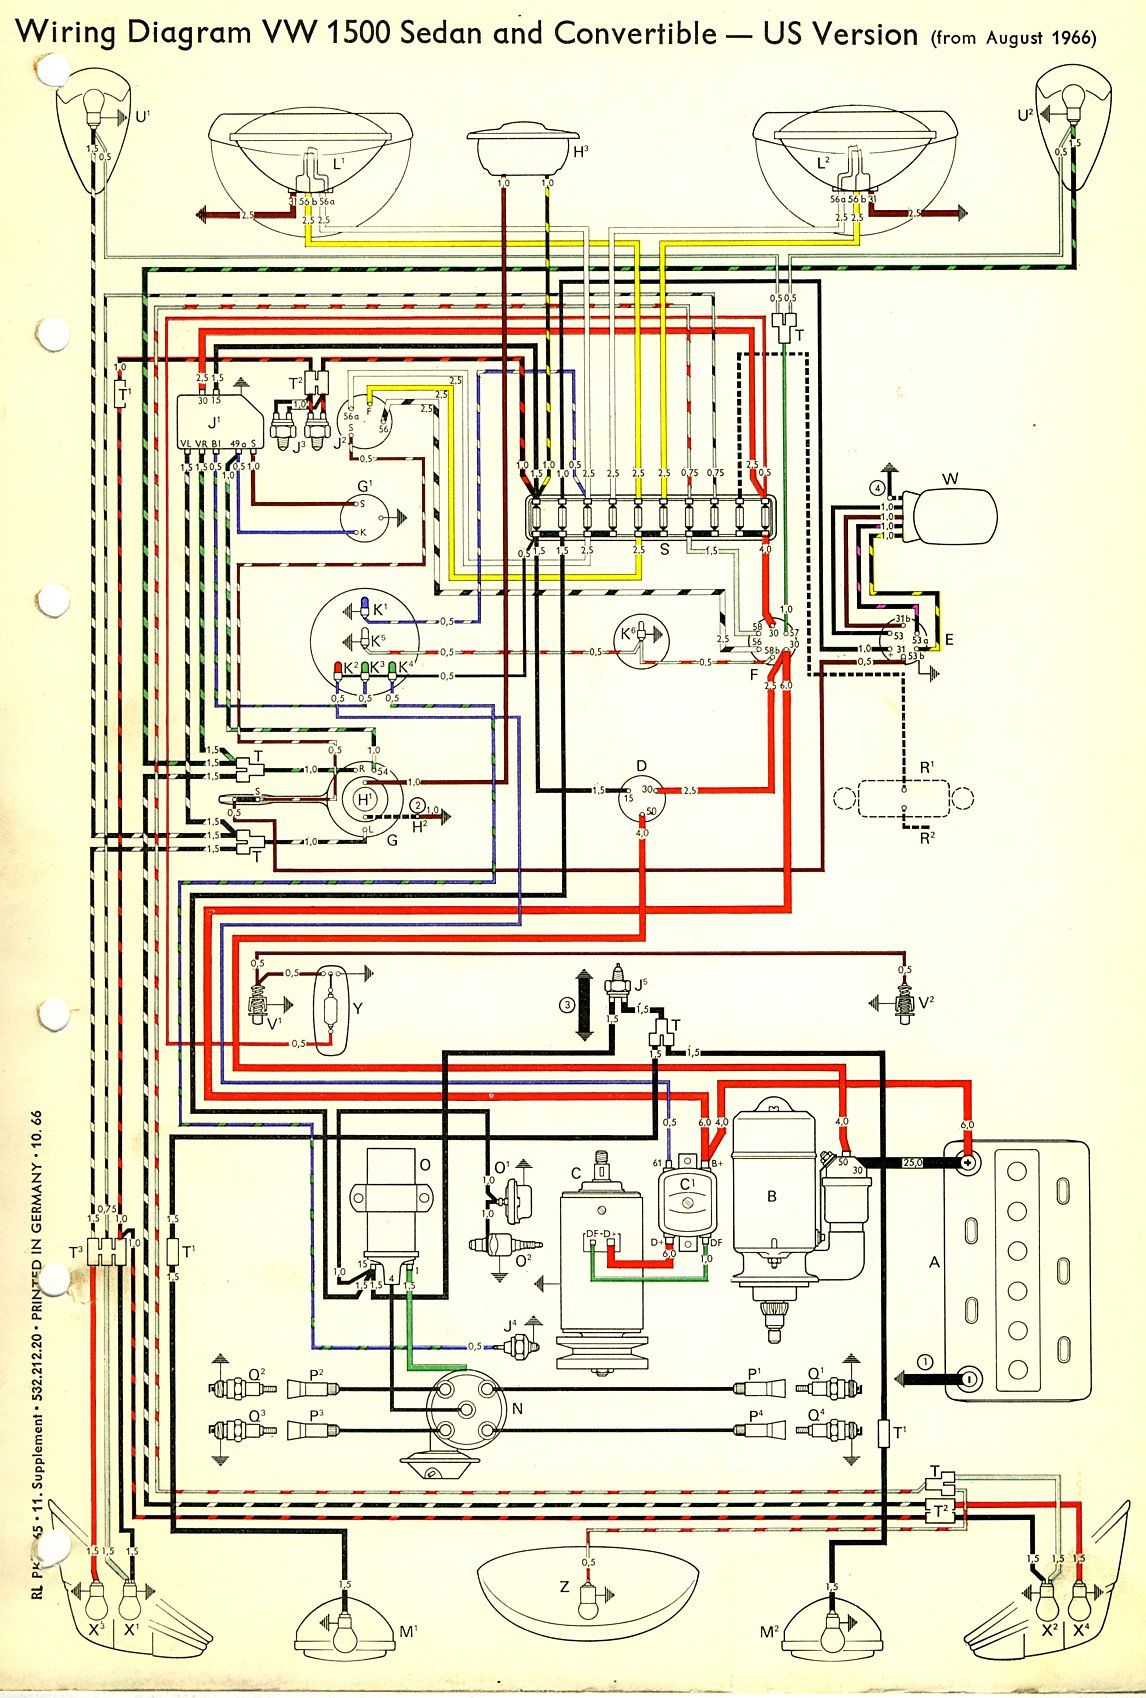 1adf990c0efb617c789fdd21338448b0 1967 beetle wiring diagram (usa) thegoldenbug com best 1967 vw vw bus samba wiring diagram at bayanpartner.co